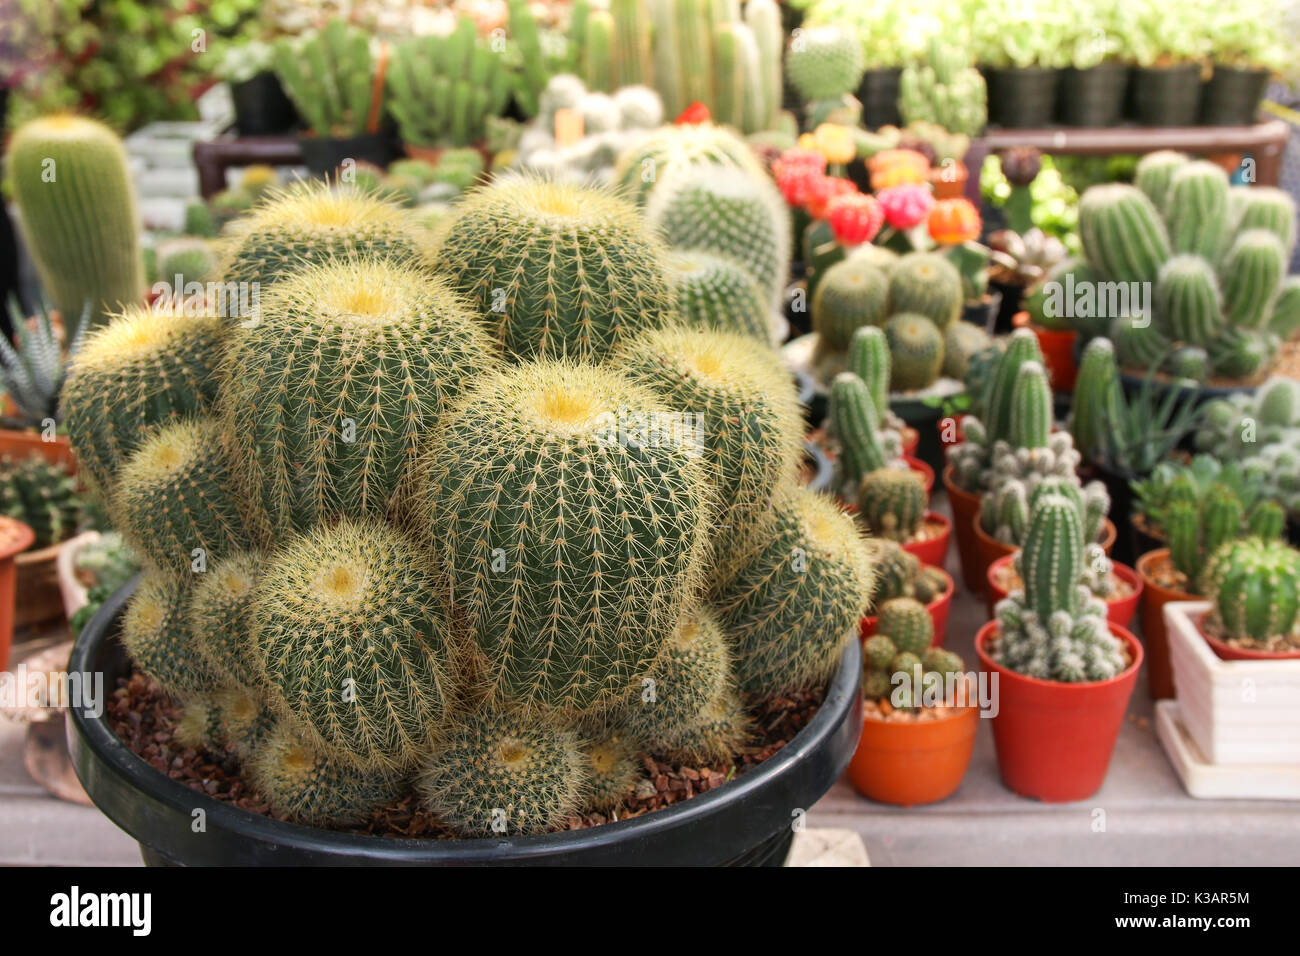 Beautiful Cactus In Pot For Home Decorate Mini Plant For Decor